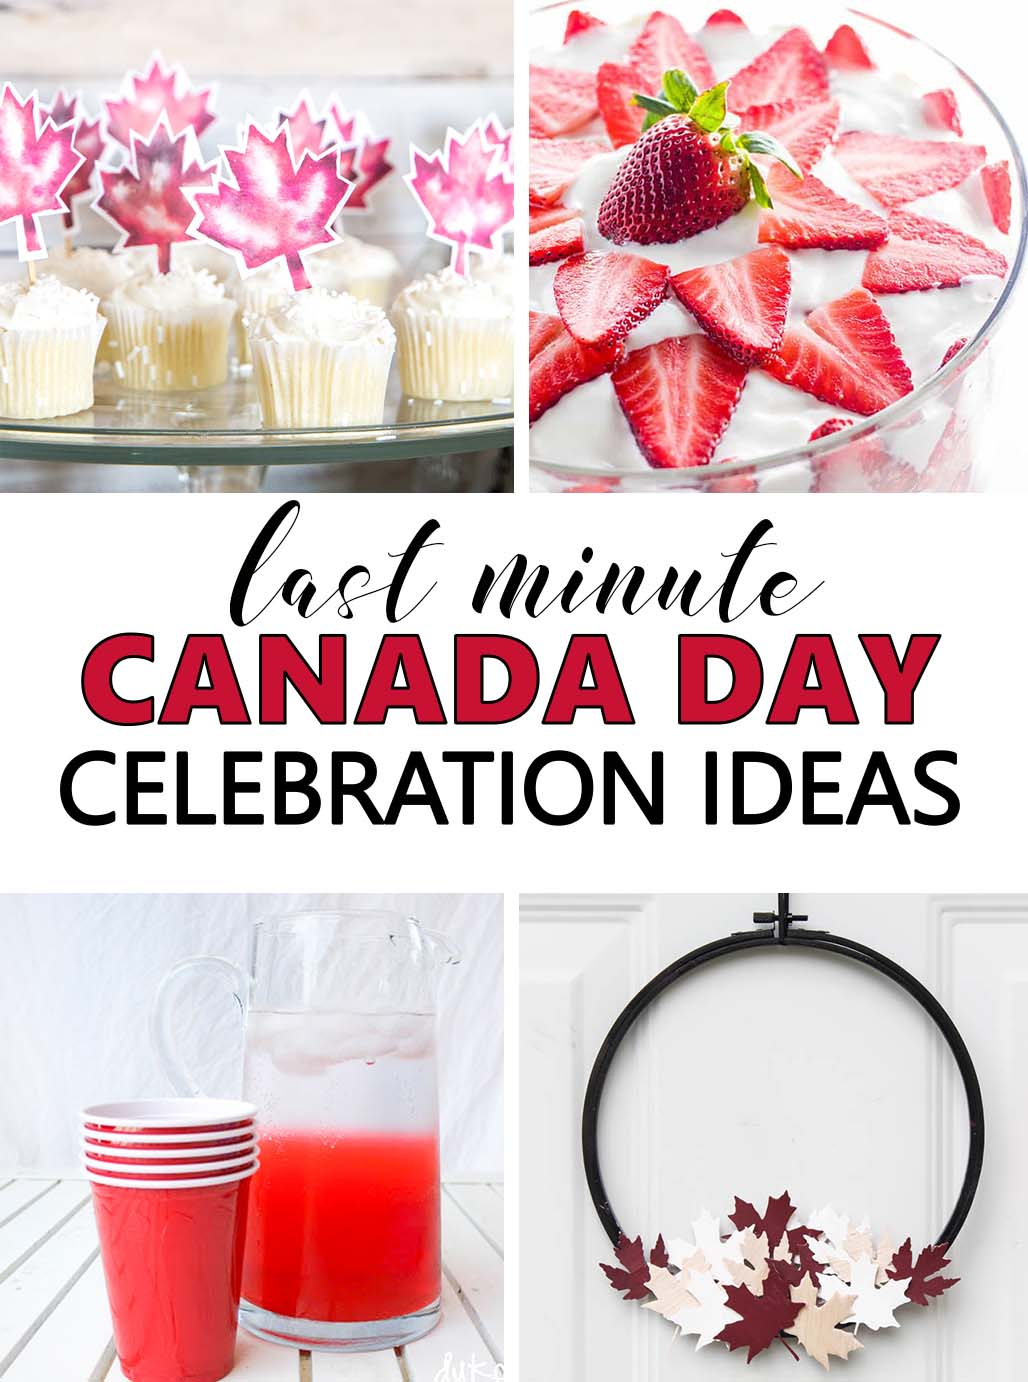 Canada Day is just around the corner. Whether you're planning ahead or looking for last minute party ideas, choose from these red and white themed Canada Day celebration ideas to get into the spirit!